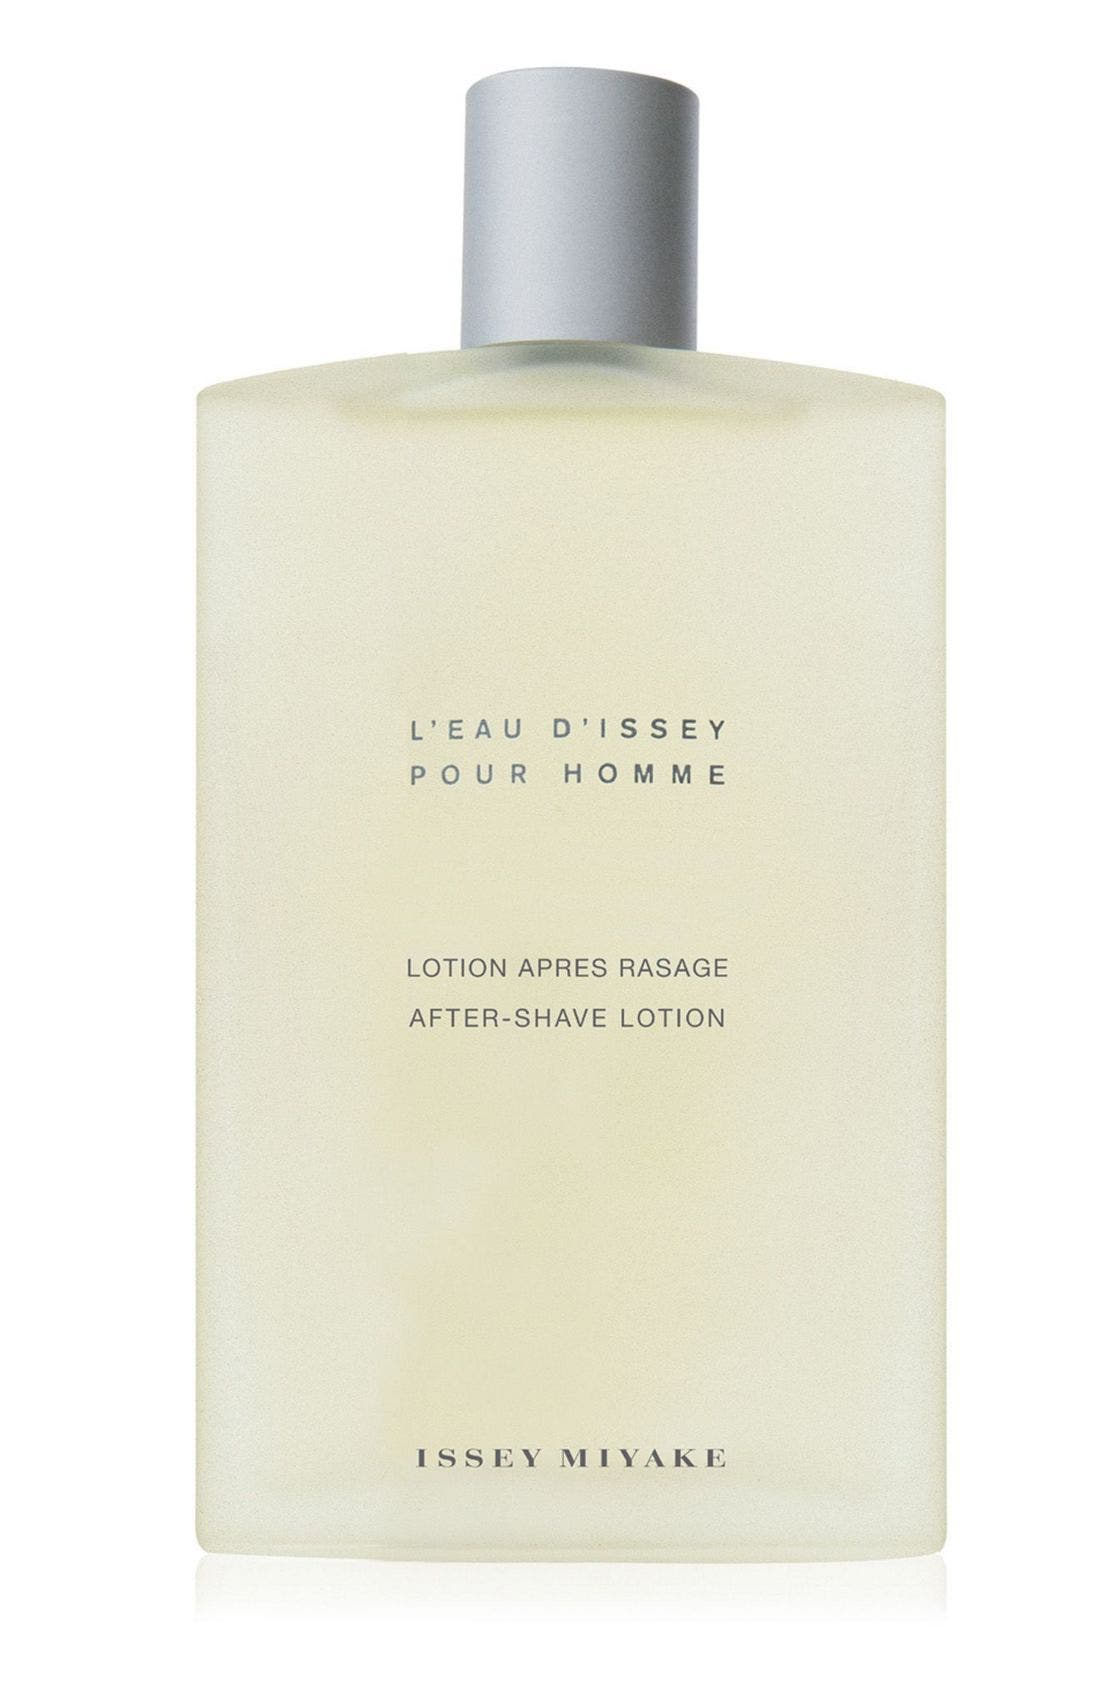 Alternate Image 1 Selected - Issey Miyake 'L'Eau d'Issey pour Homme' After Shave Lotion